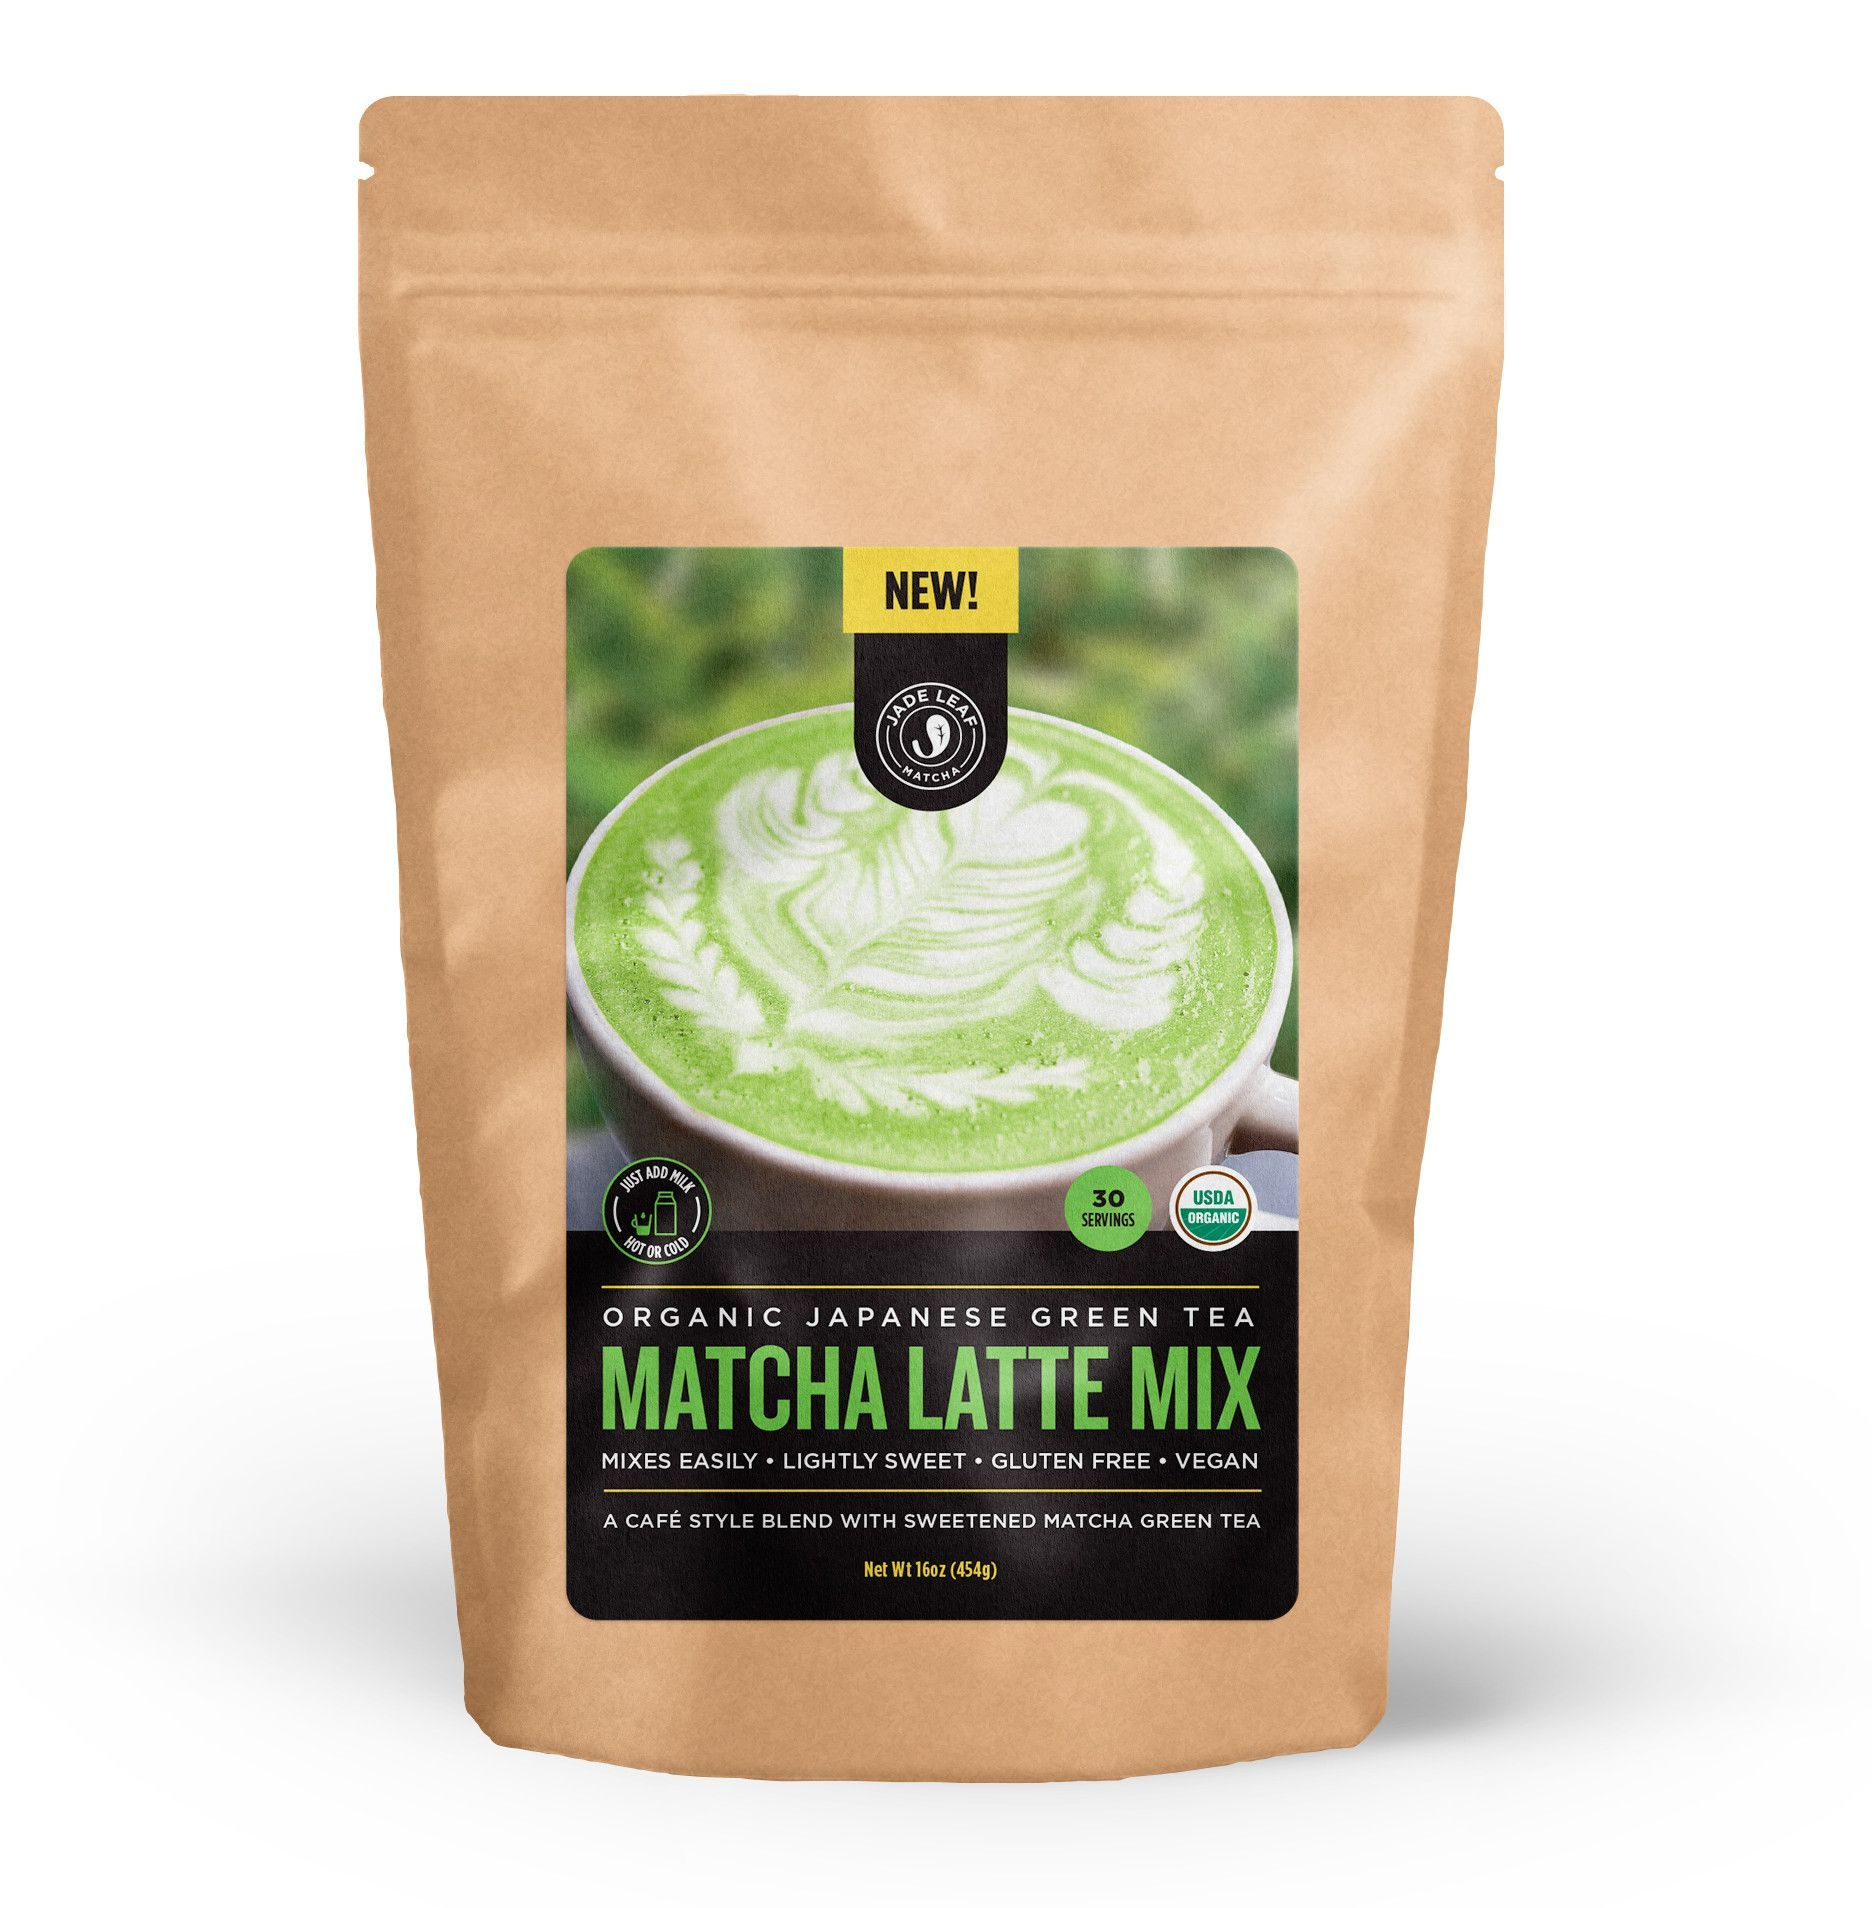 Create delicious matcha lattes at home! Lightly